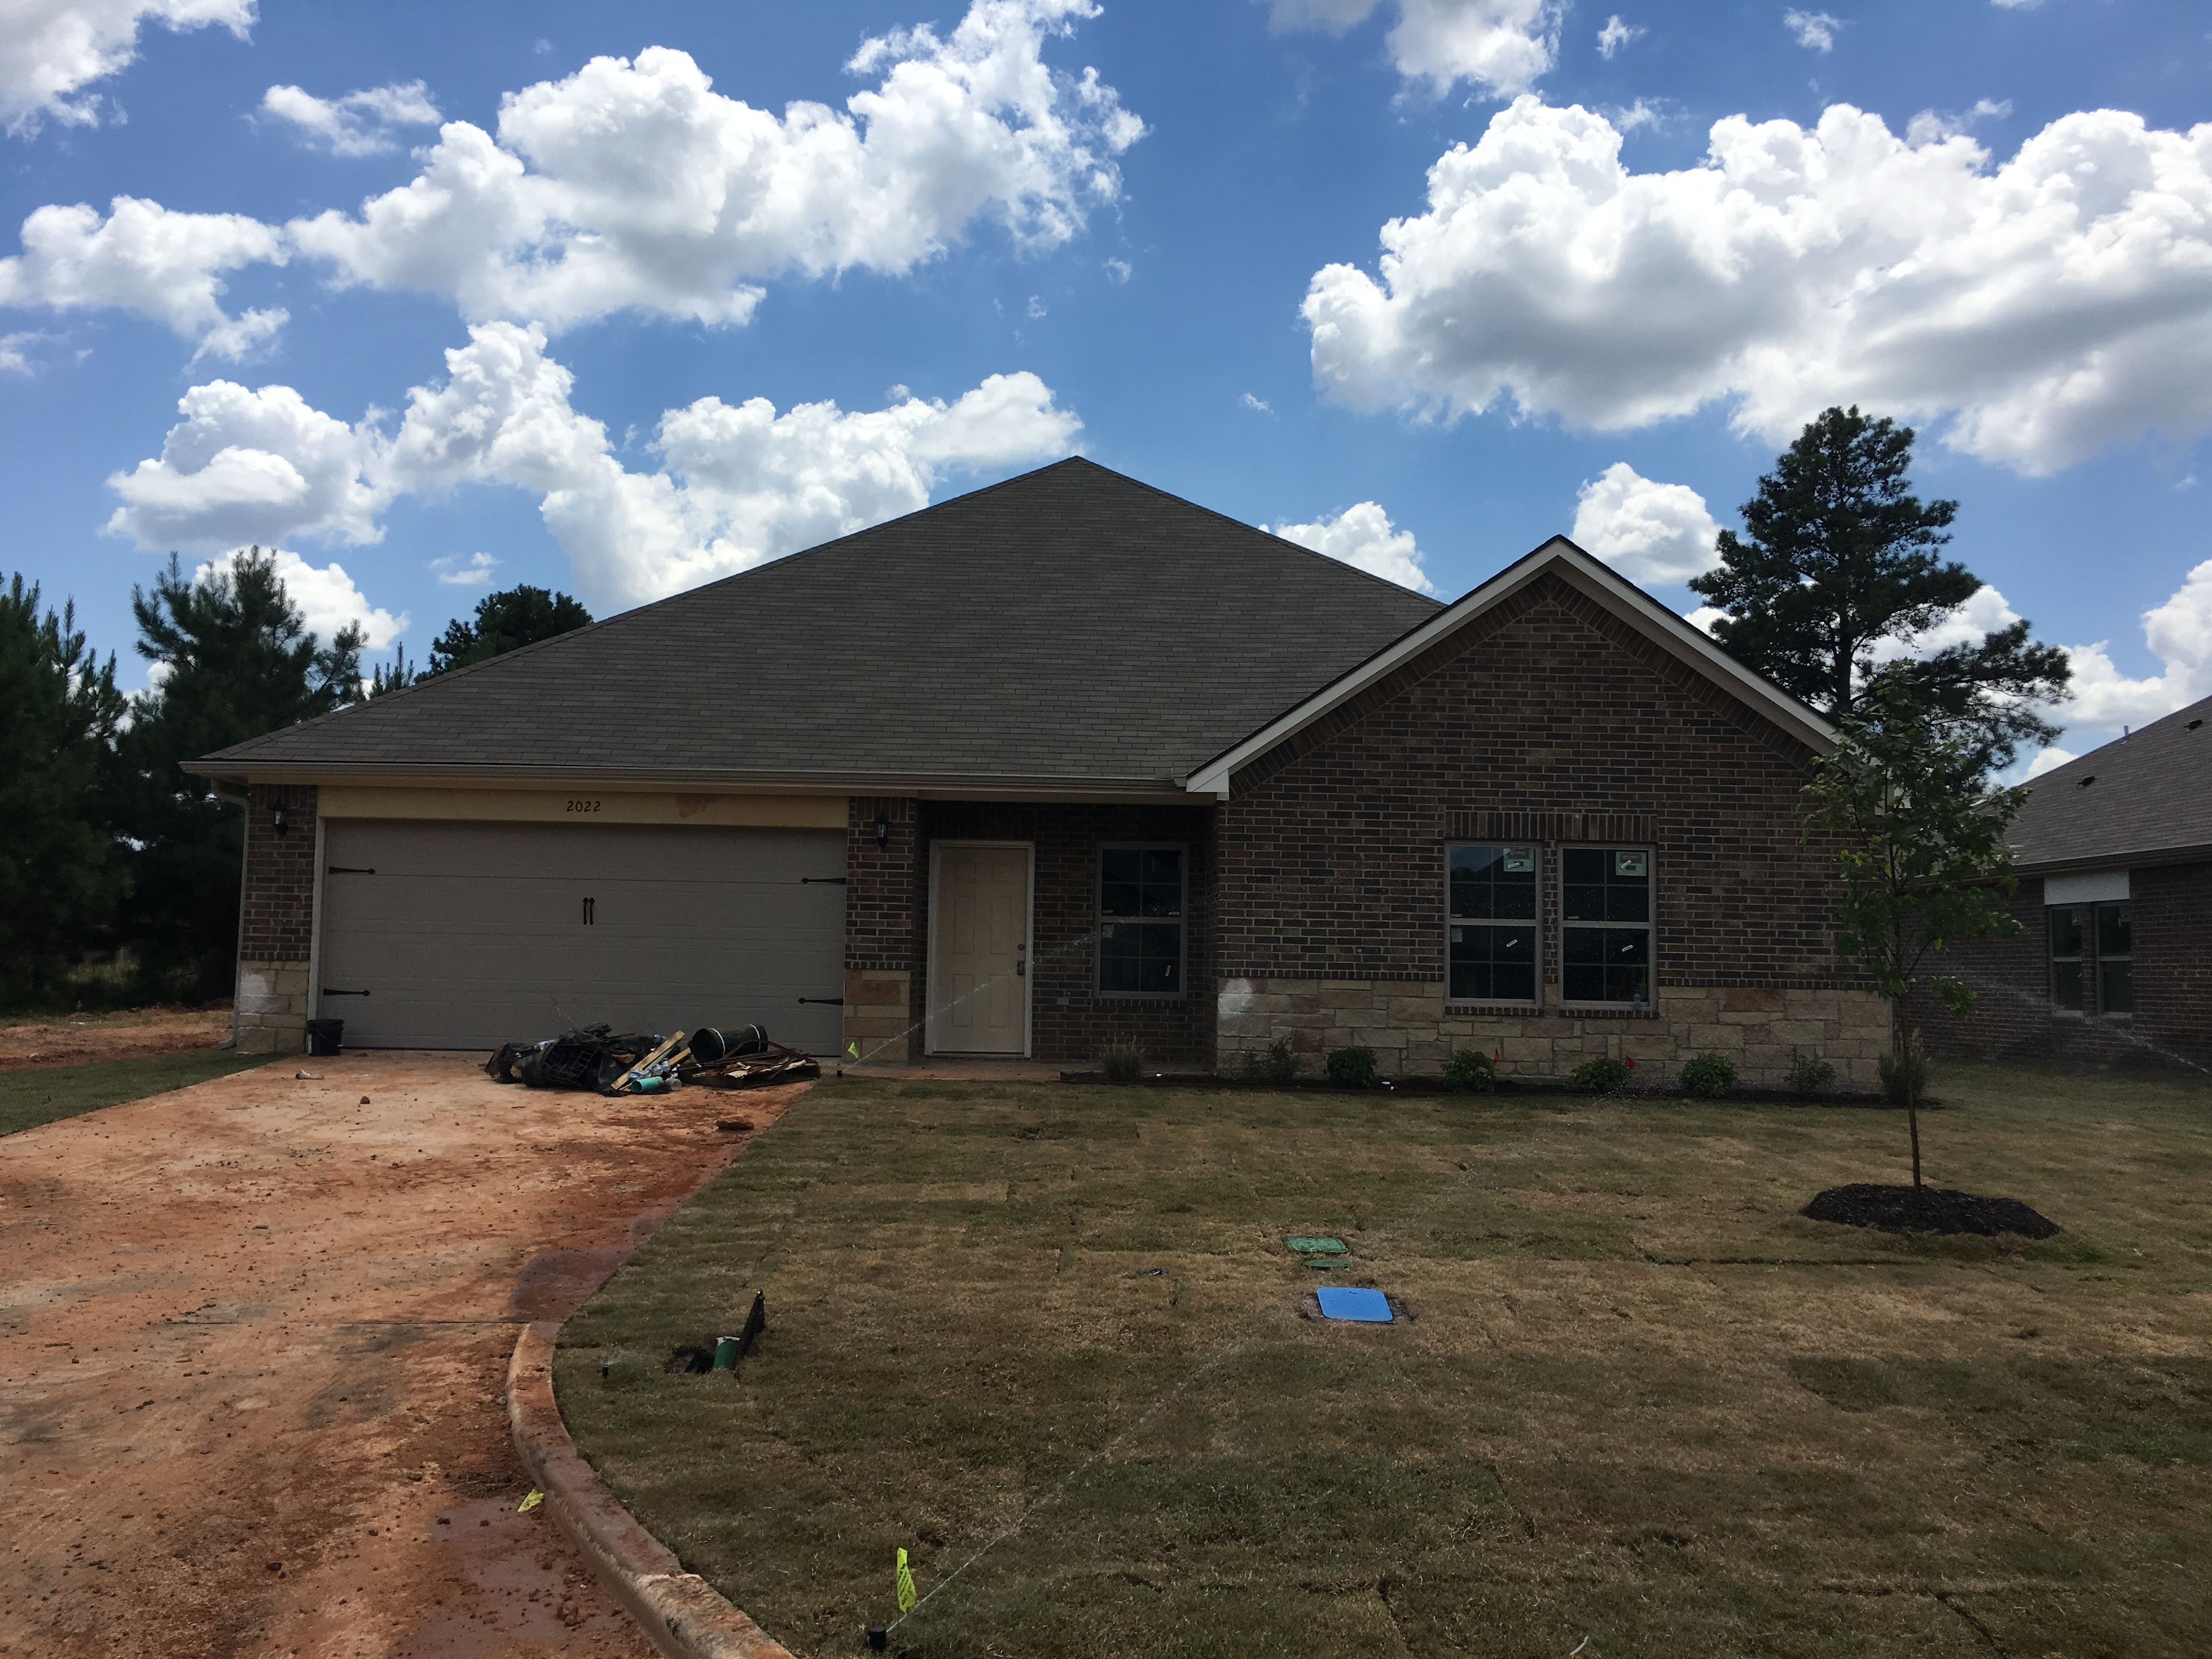 New Homes for Sale in Tyler, TX and East Texas